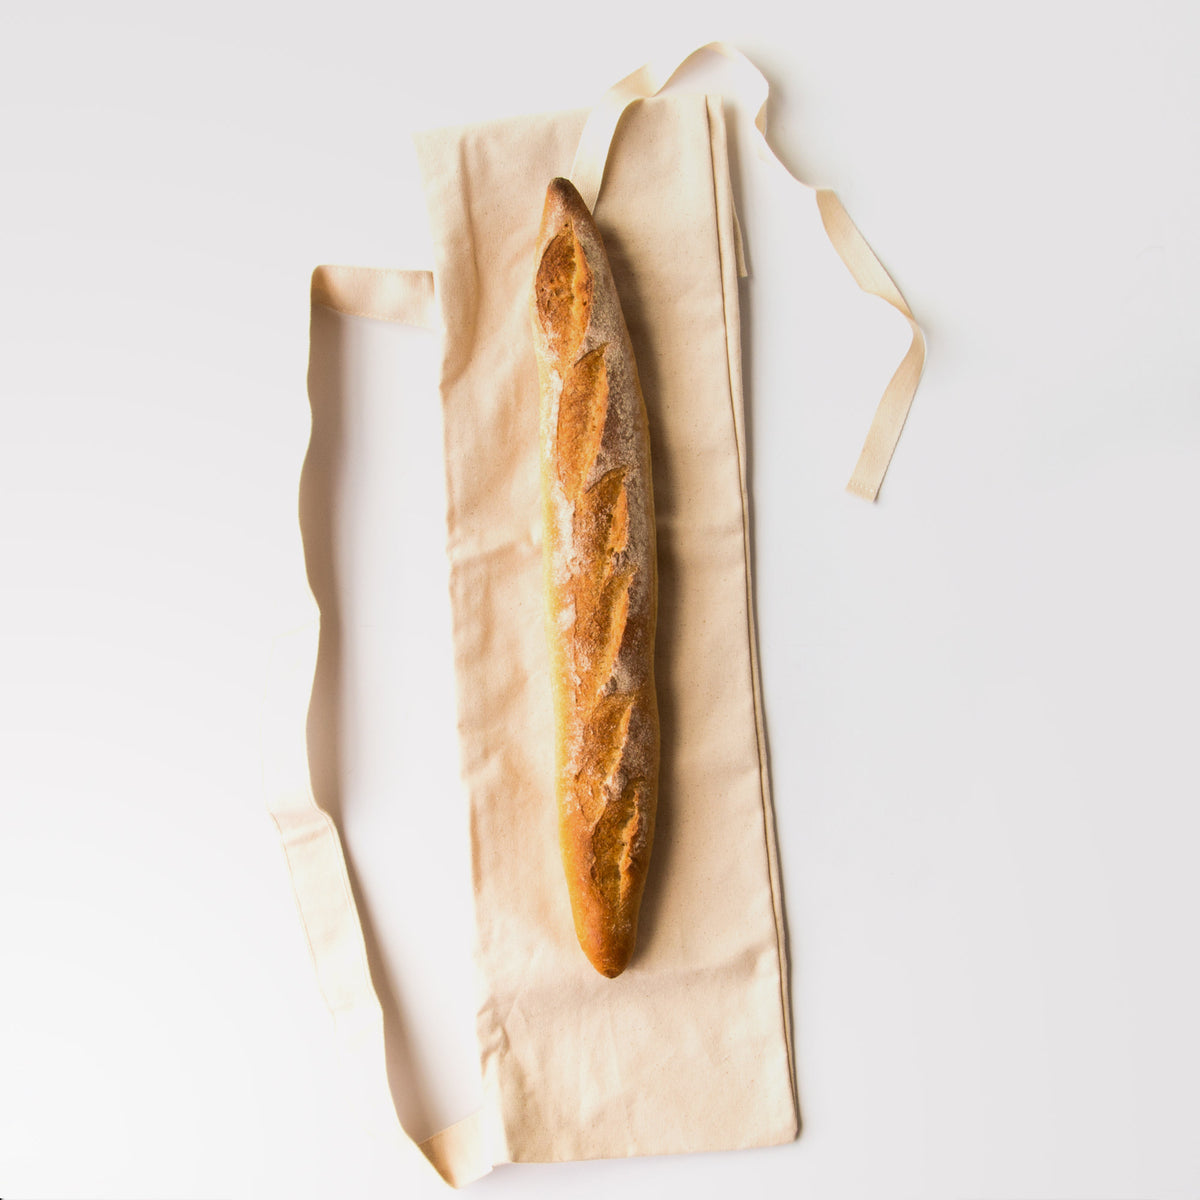 Top View - Reusable Baguette Bag - Zero Waste 100% Cotton Bread Bag - Sold by Chic & Basta